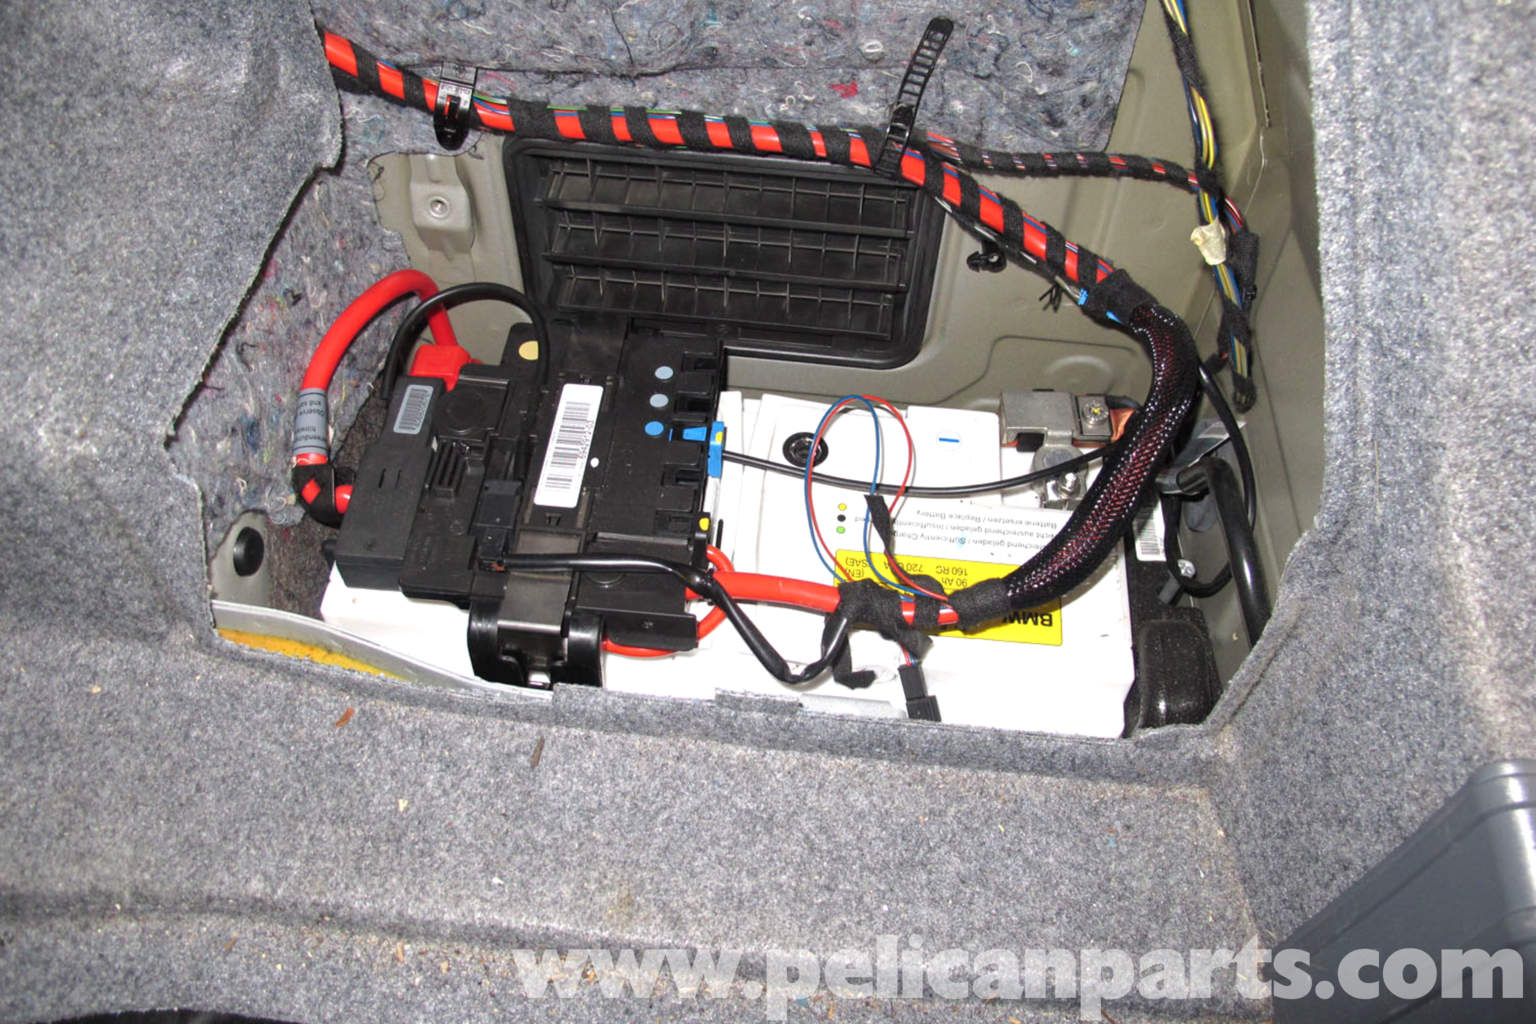 pic01 e90 m3 fuse box e39 fuse box wiring diagram ~ odicis e90 m3 fuse box location at n-0.co